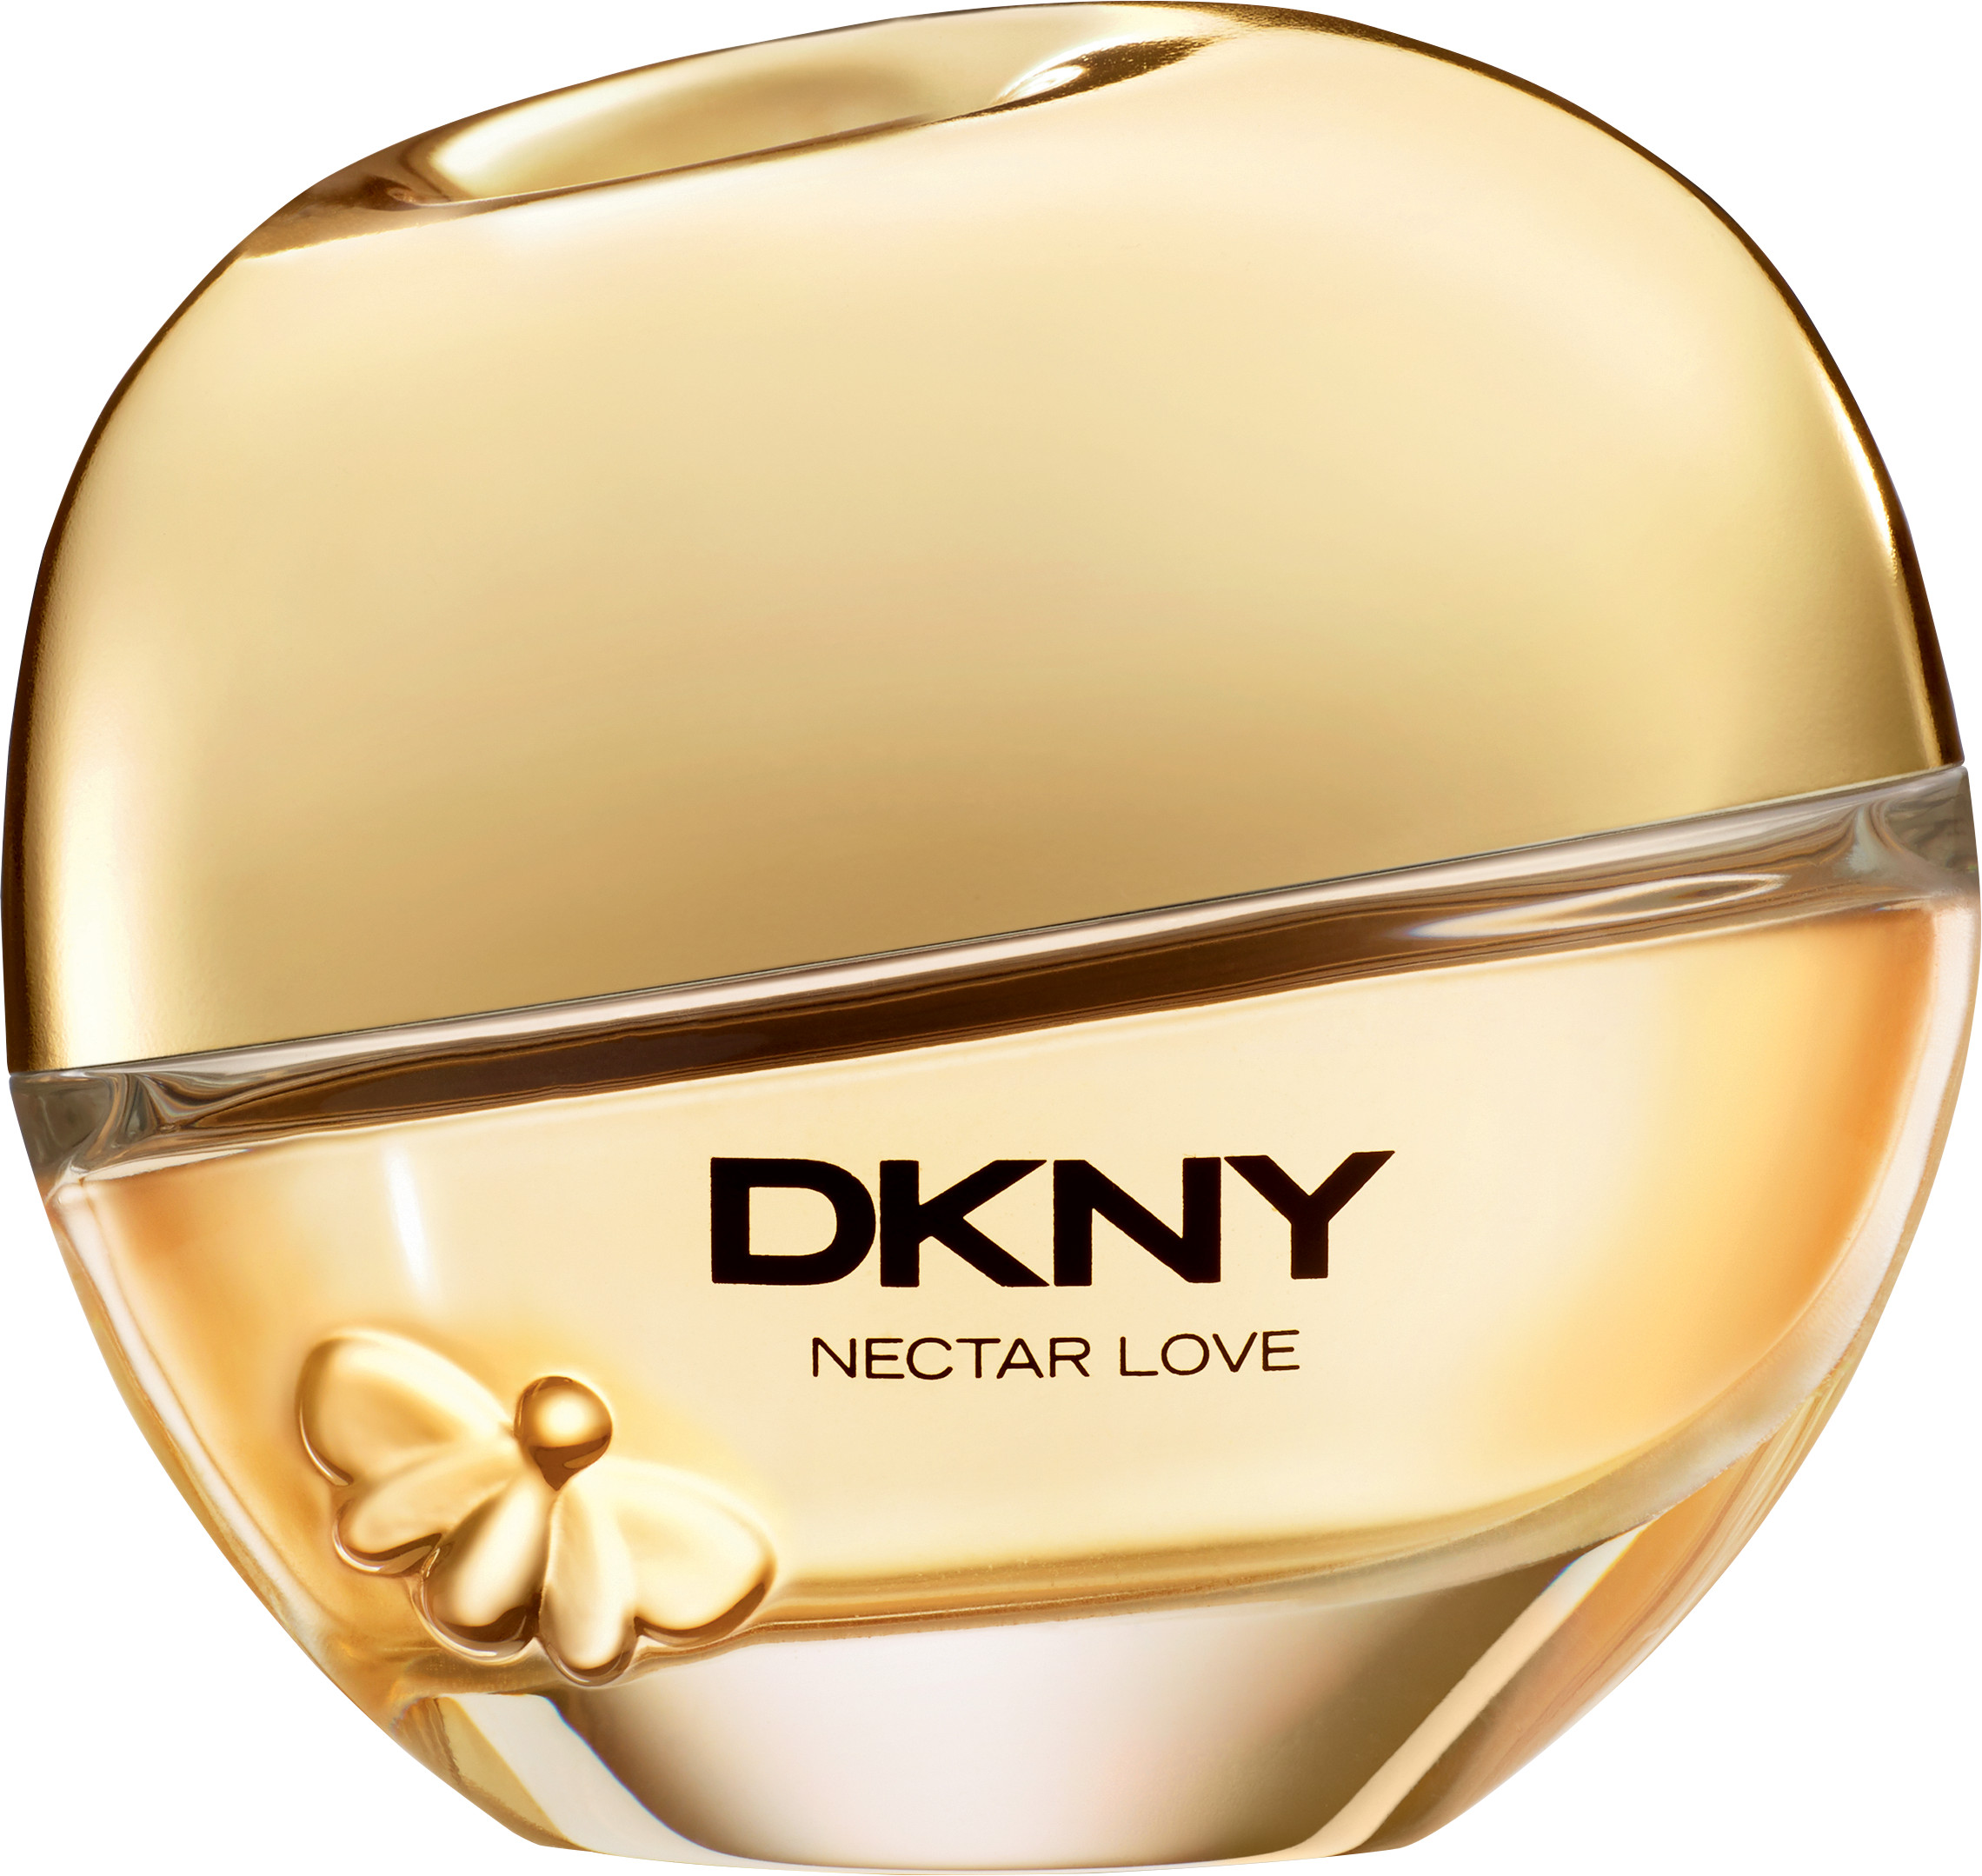 dkny Your product will be shipped to its final destination to arrive in 2 business days or faster if your order is placed before the 11 am pst cutoff time, then it will ship that day and arrive 2 business days later.